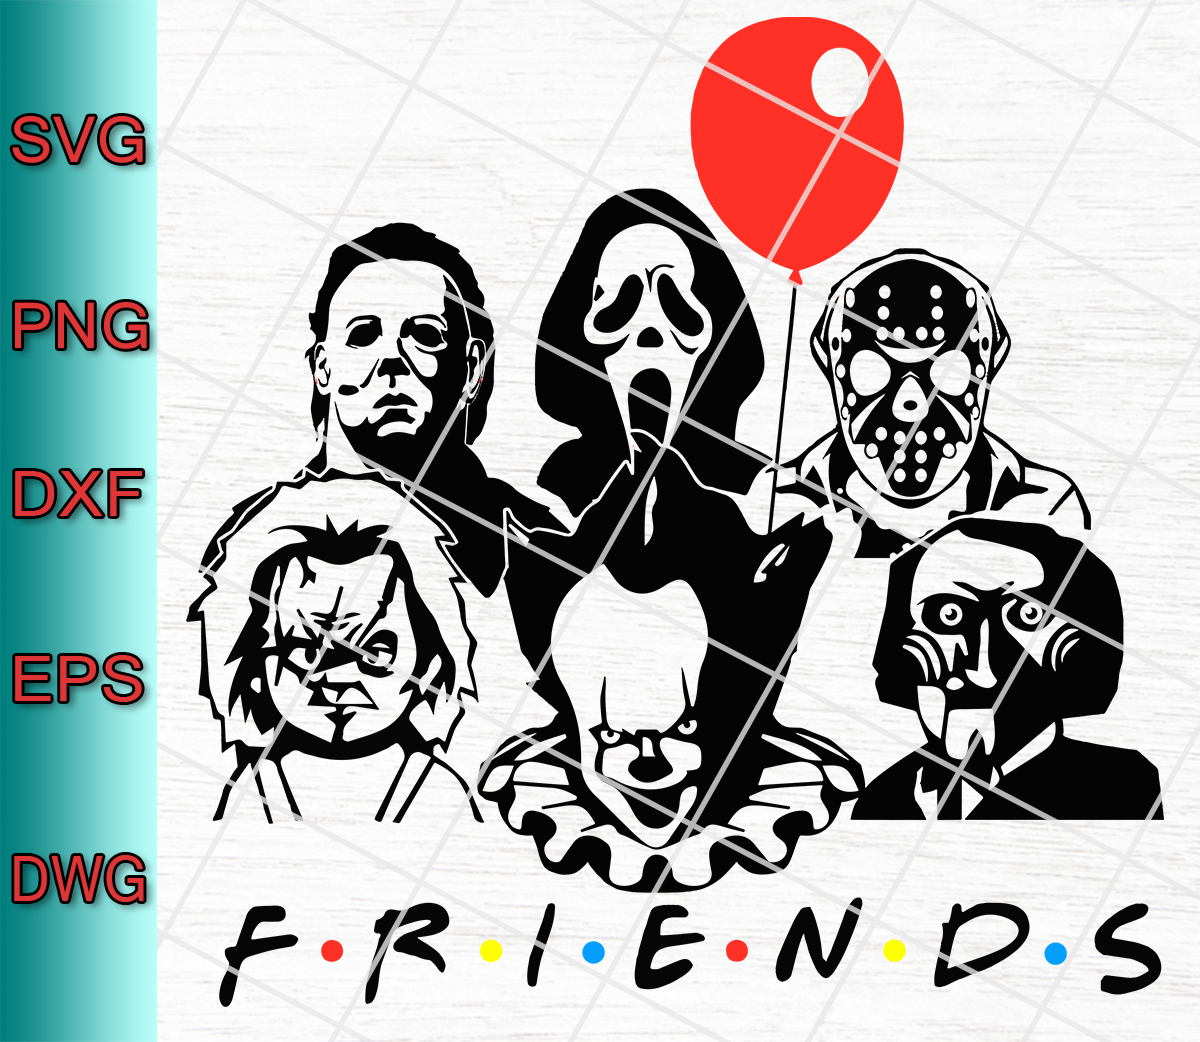 Halloween Friends Shirt Svg.Friends Horror Movie Creepy Halloween Svg Png Eps Dxf Designs Digital Download